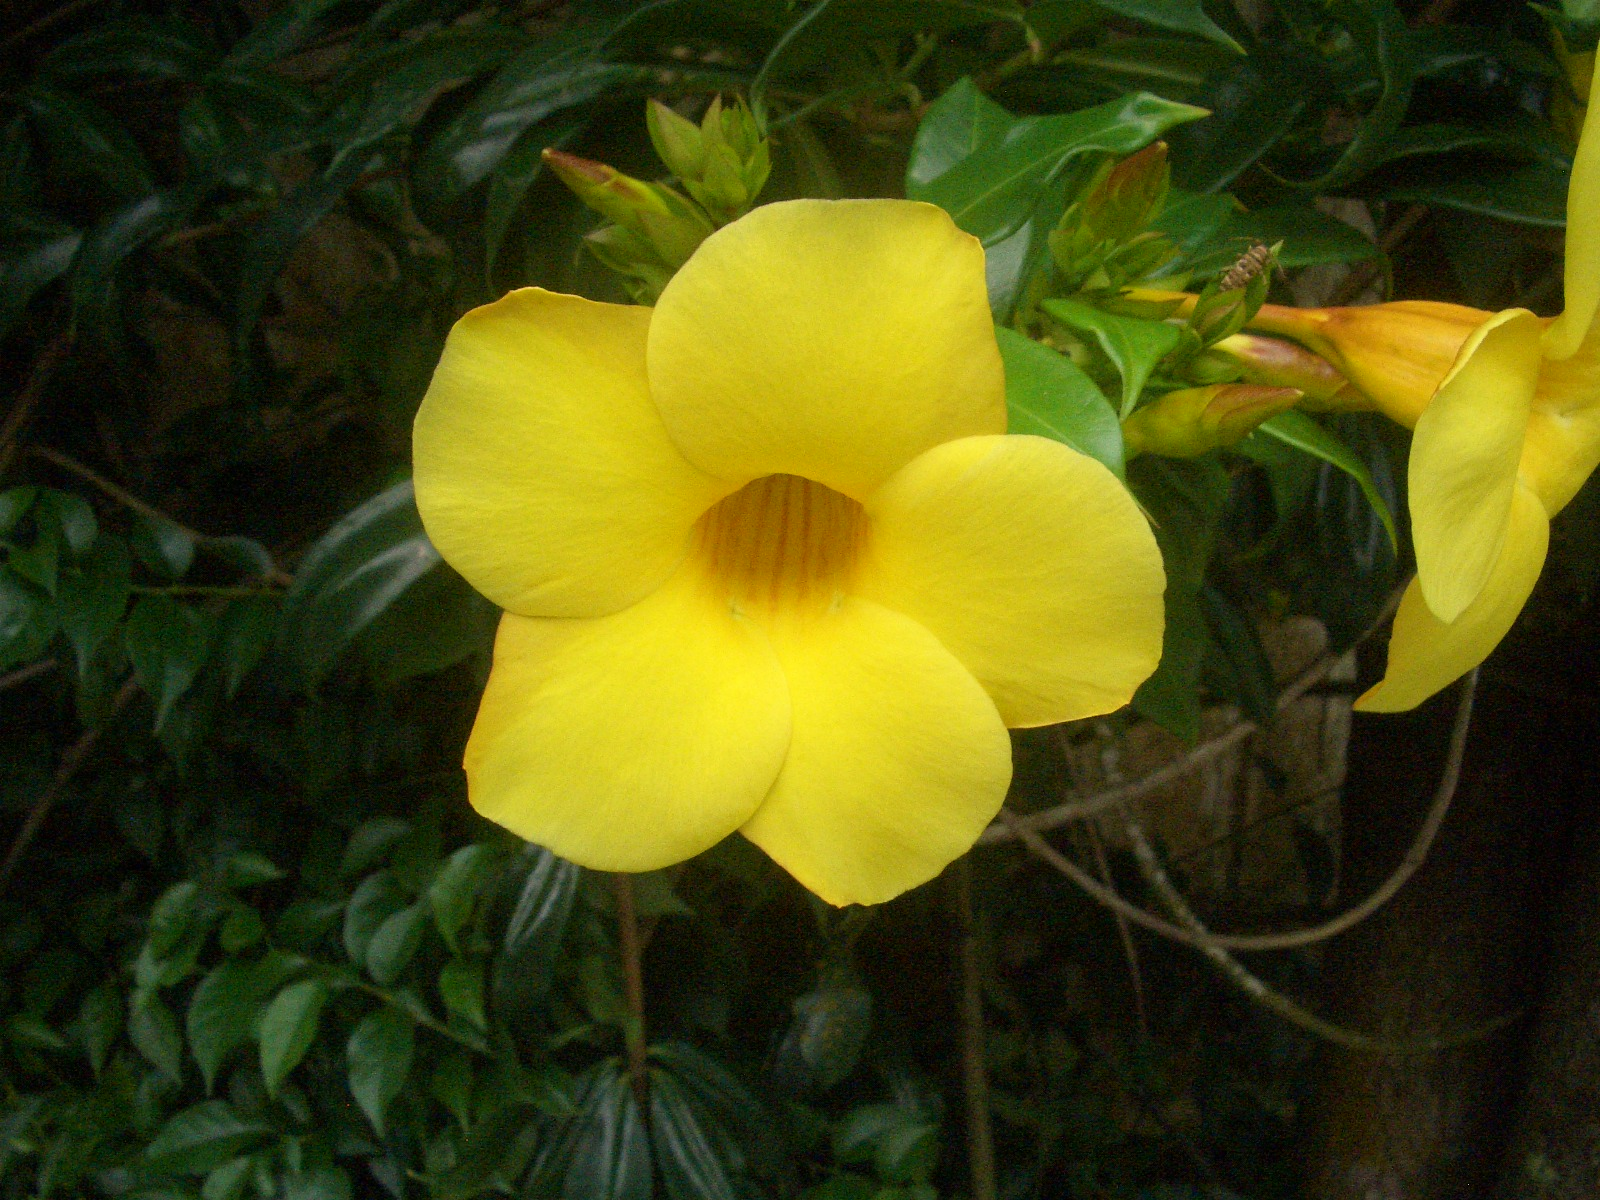 Eileen first interest beautiful plants and flowers yellow bell allamanda also known as yellow bell golden trumpet or buttercup flower is a genus of tropical shrubs or vines belonging to the dogbane family mightylinksfo